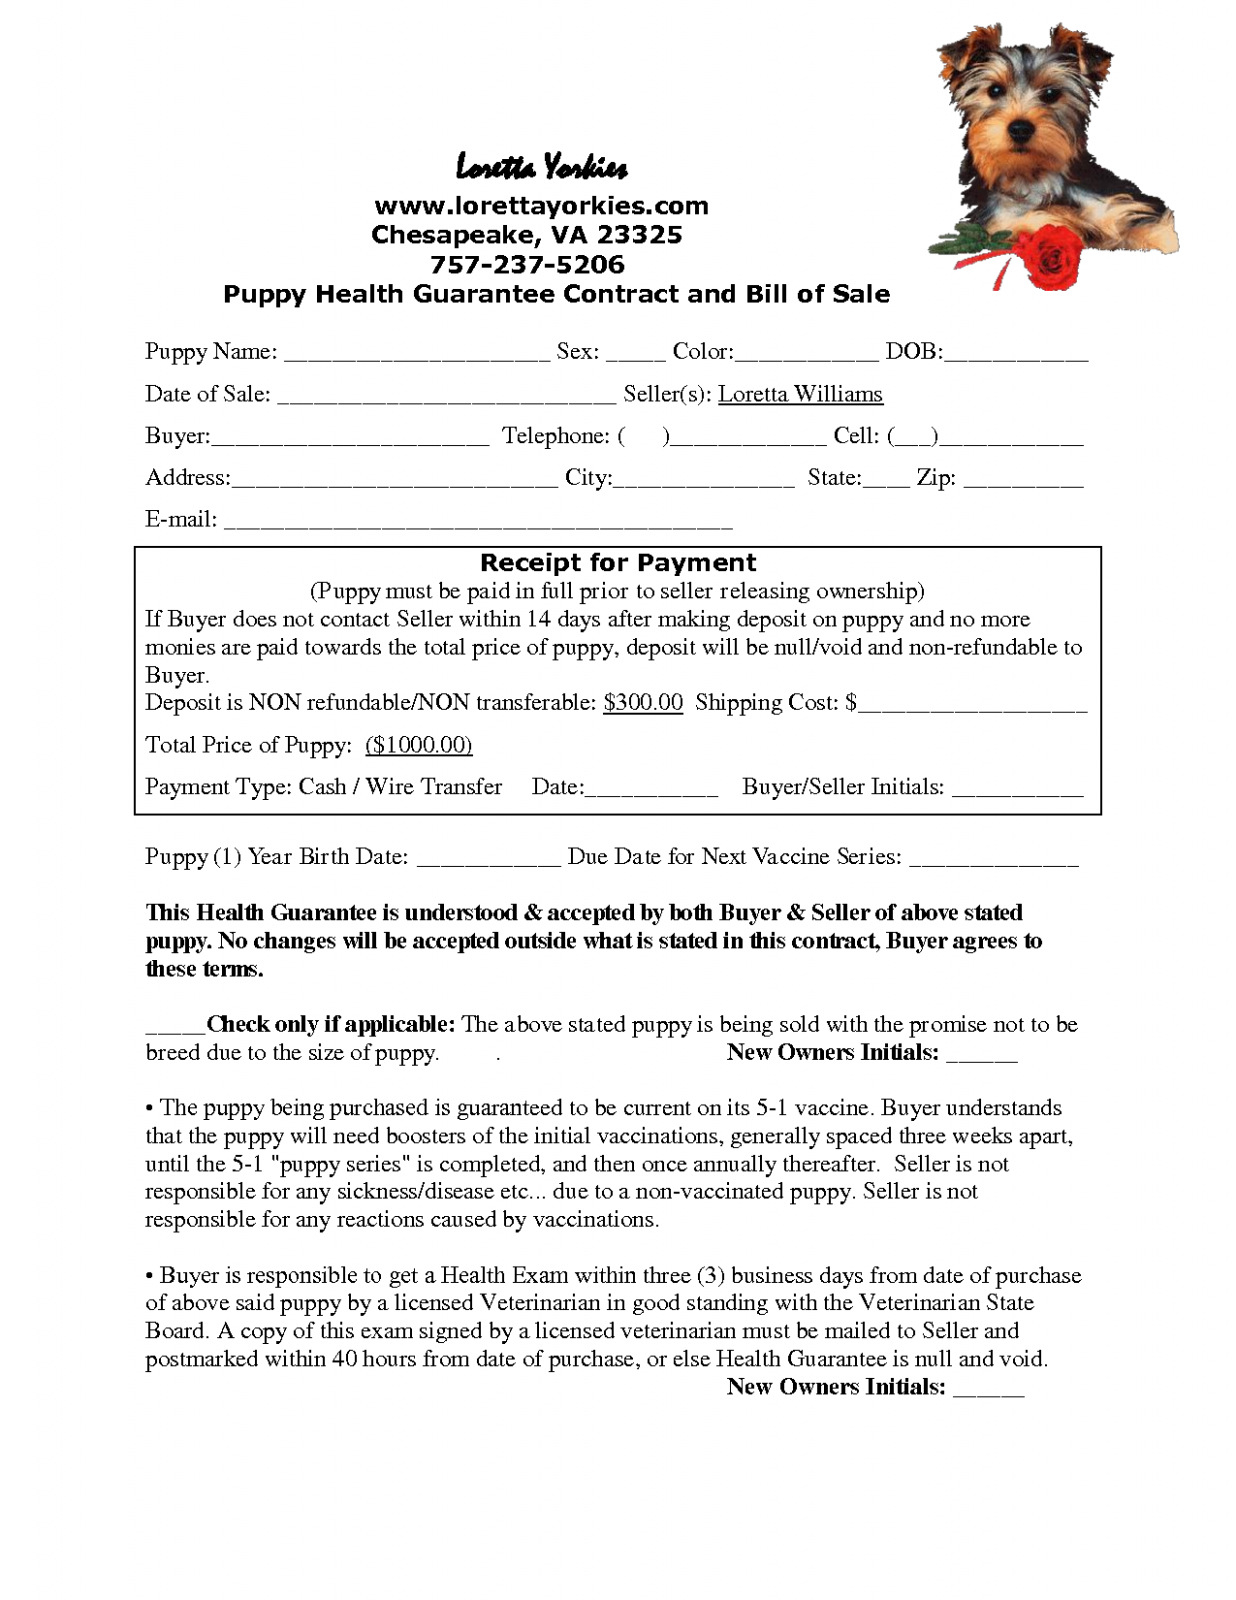 Download Free 8 Best Of Free Printable Puppy Purchase Agreement - Free Printable Puppy Sales Contract